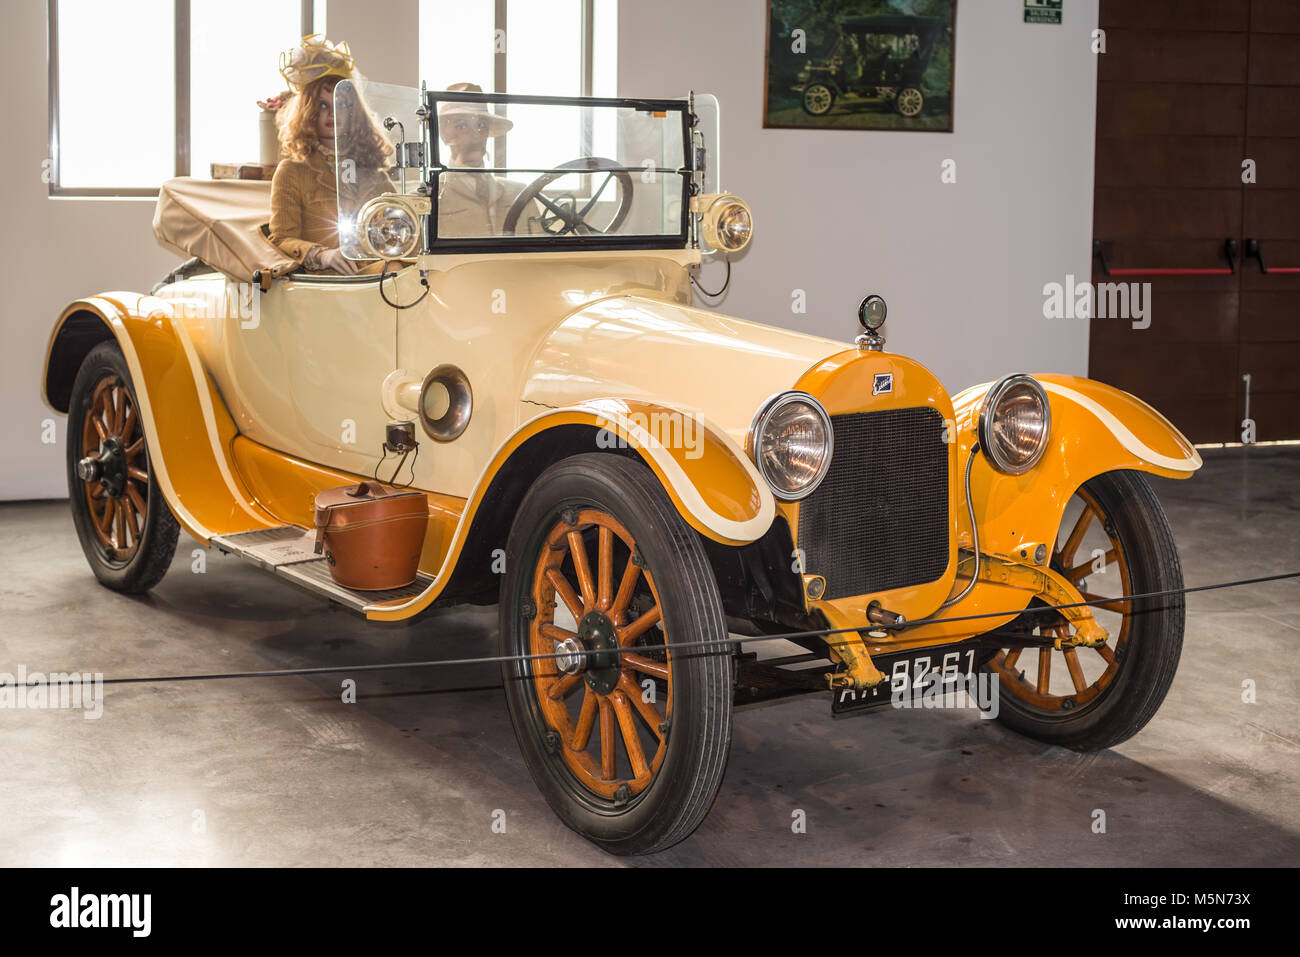 Malaga, Spain - December 7, 2016: Vintage Buick 1916 car displayed at Malaga Automobile Museum - Stock Image